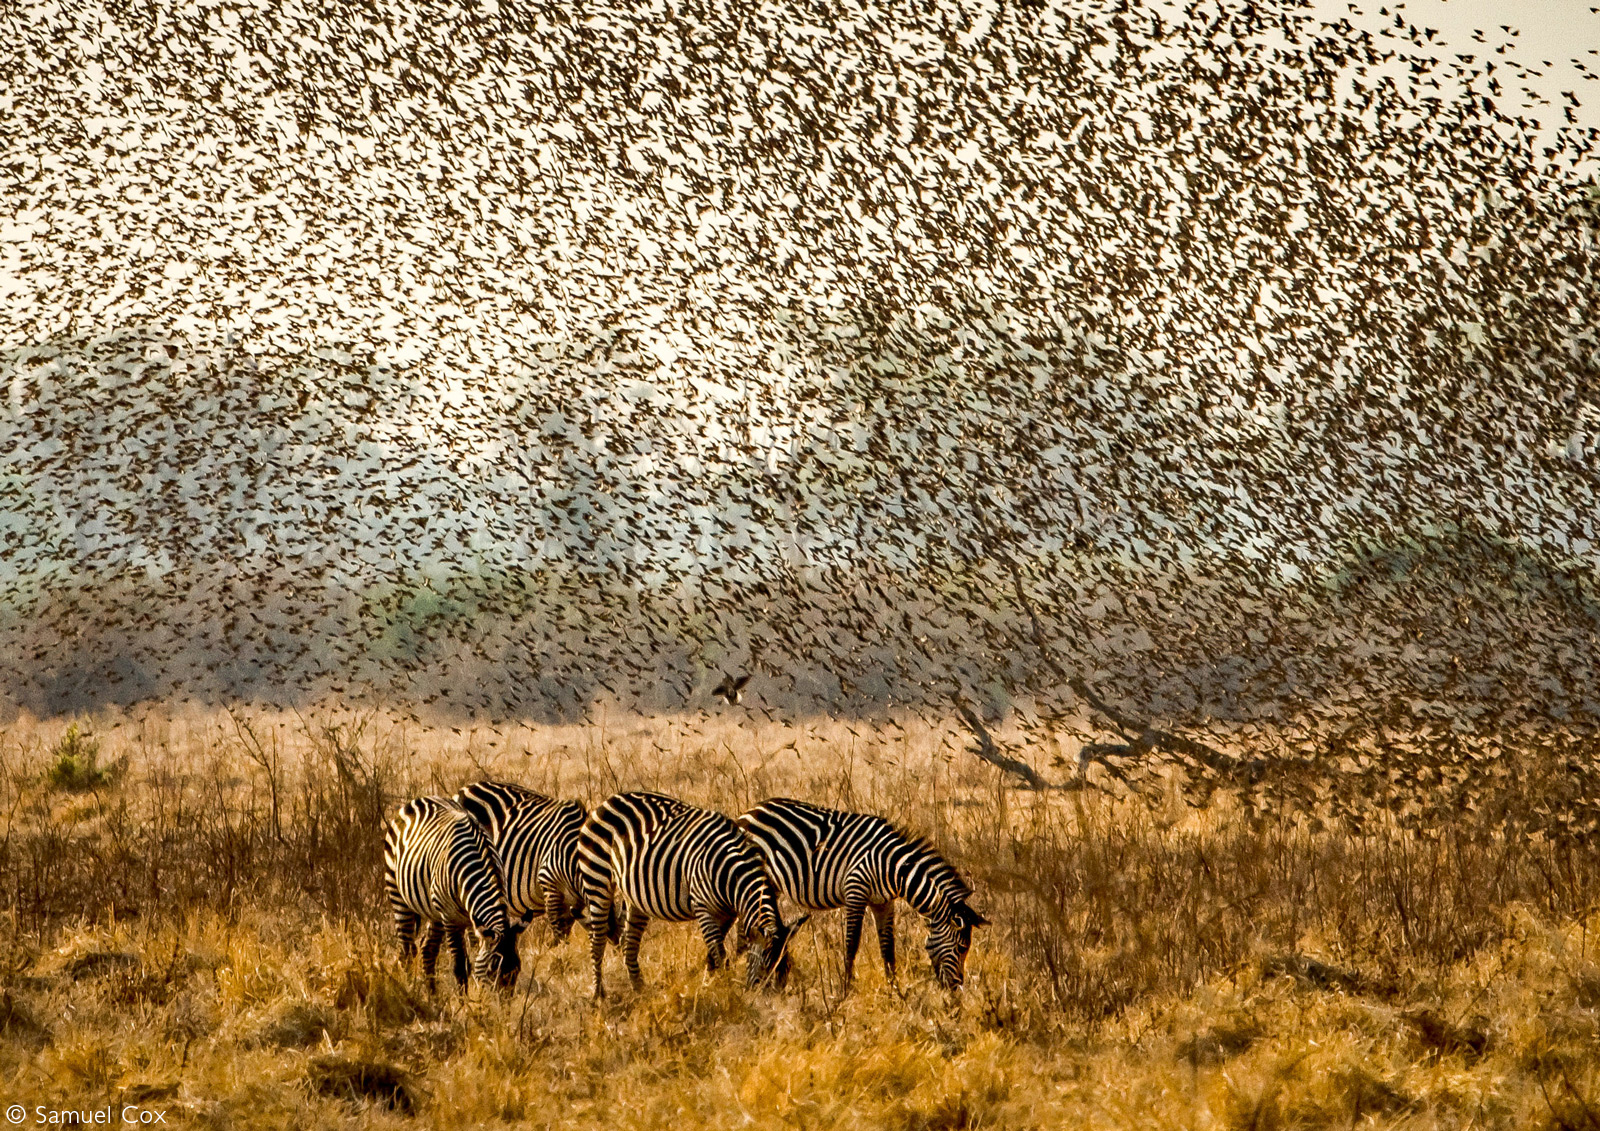 Thousands of red-billed queleas erupt and fill the skies, dwarfing the grazing zebras. South Luangwa National Park, Zambia © Samuel Cox